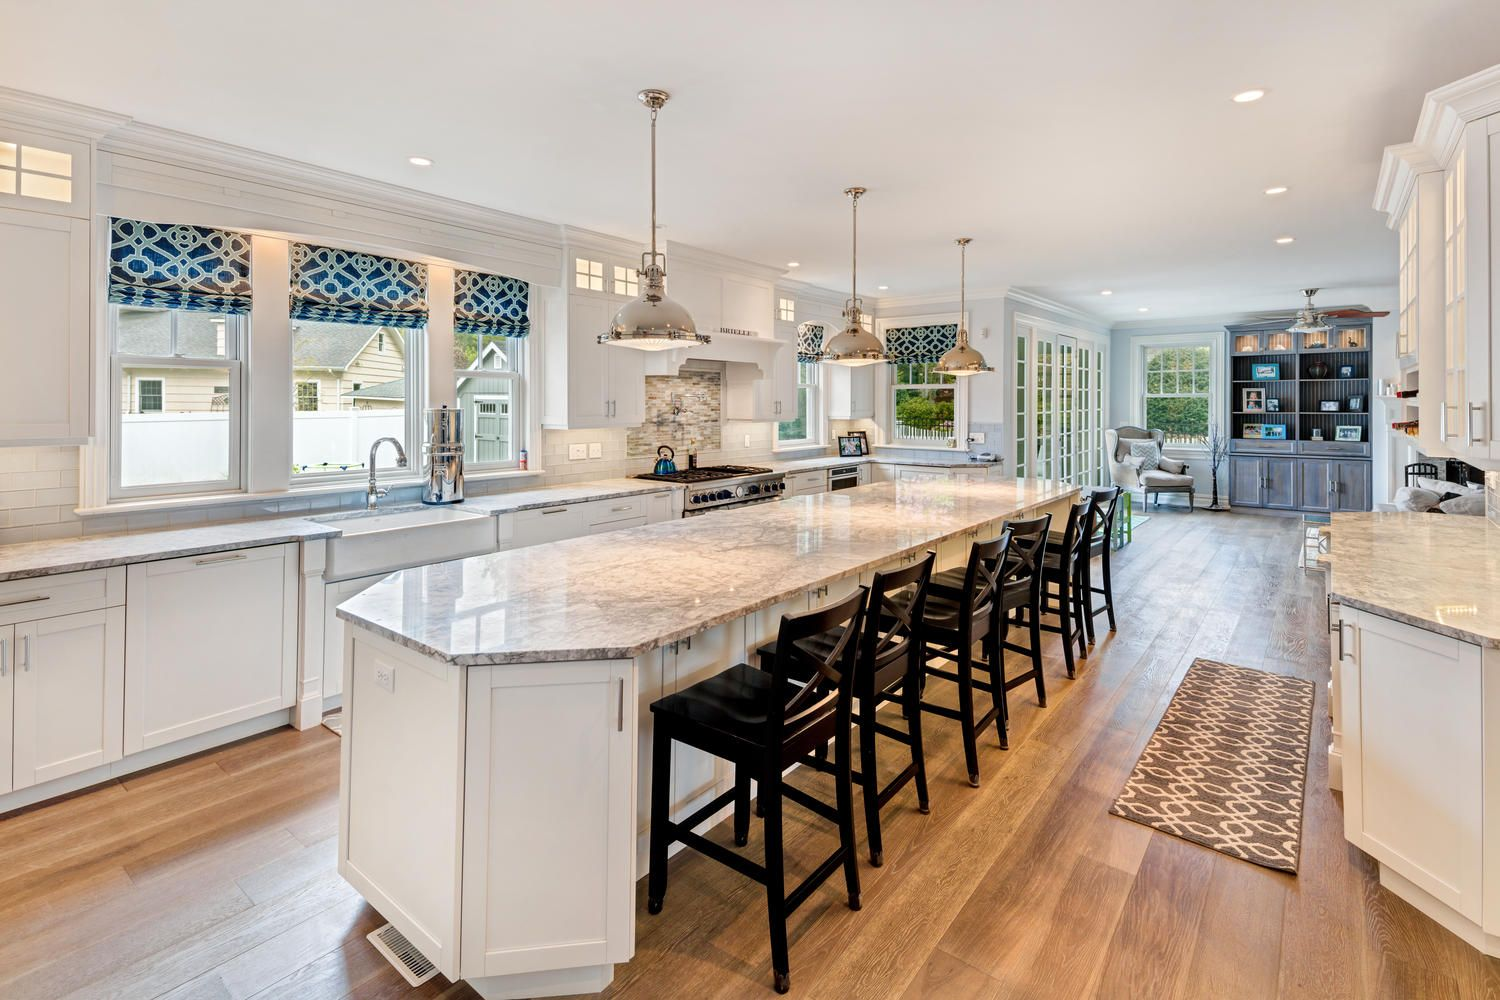 Inspiring White Kitchen Brielle New Jerseydesign Line Kitchens Captivating Design Line Kitchens Review